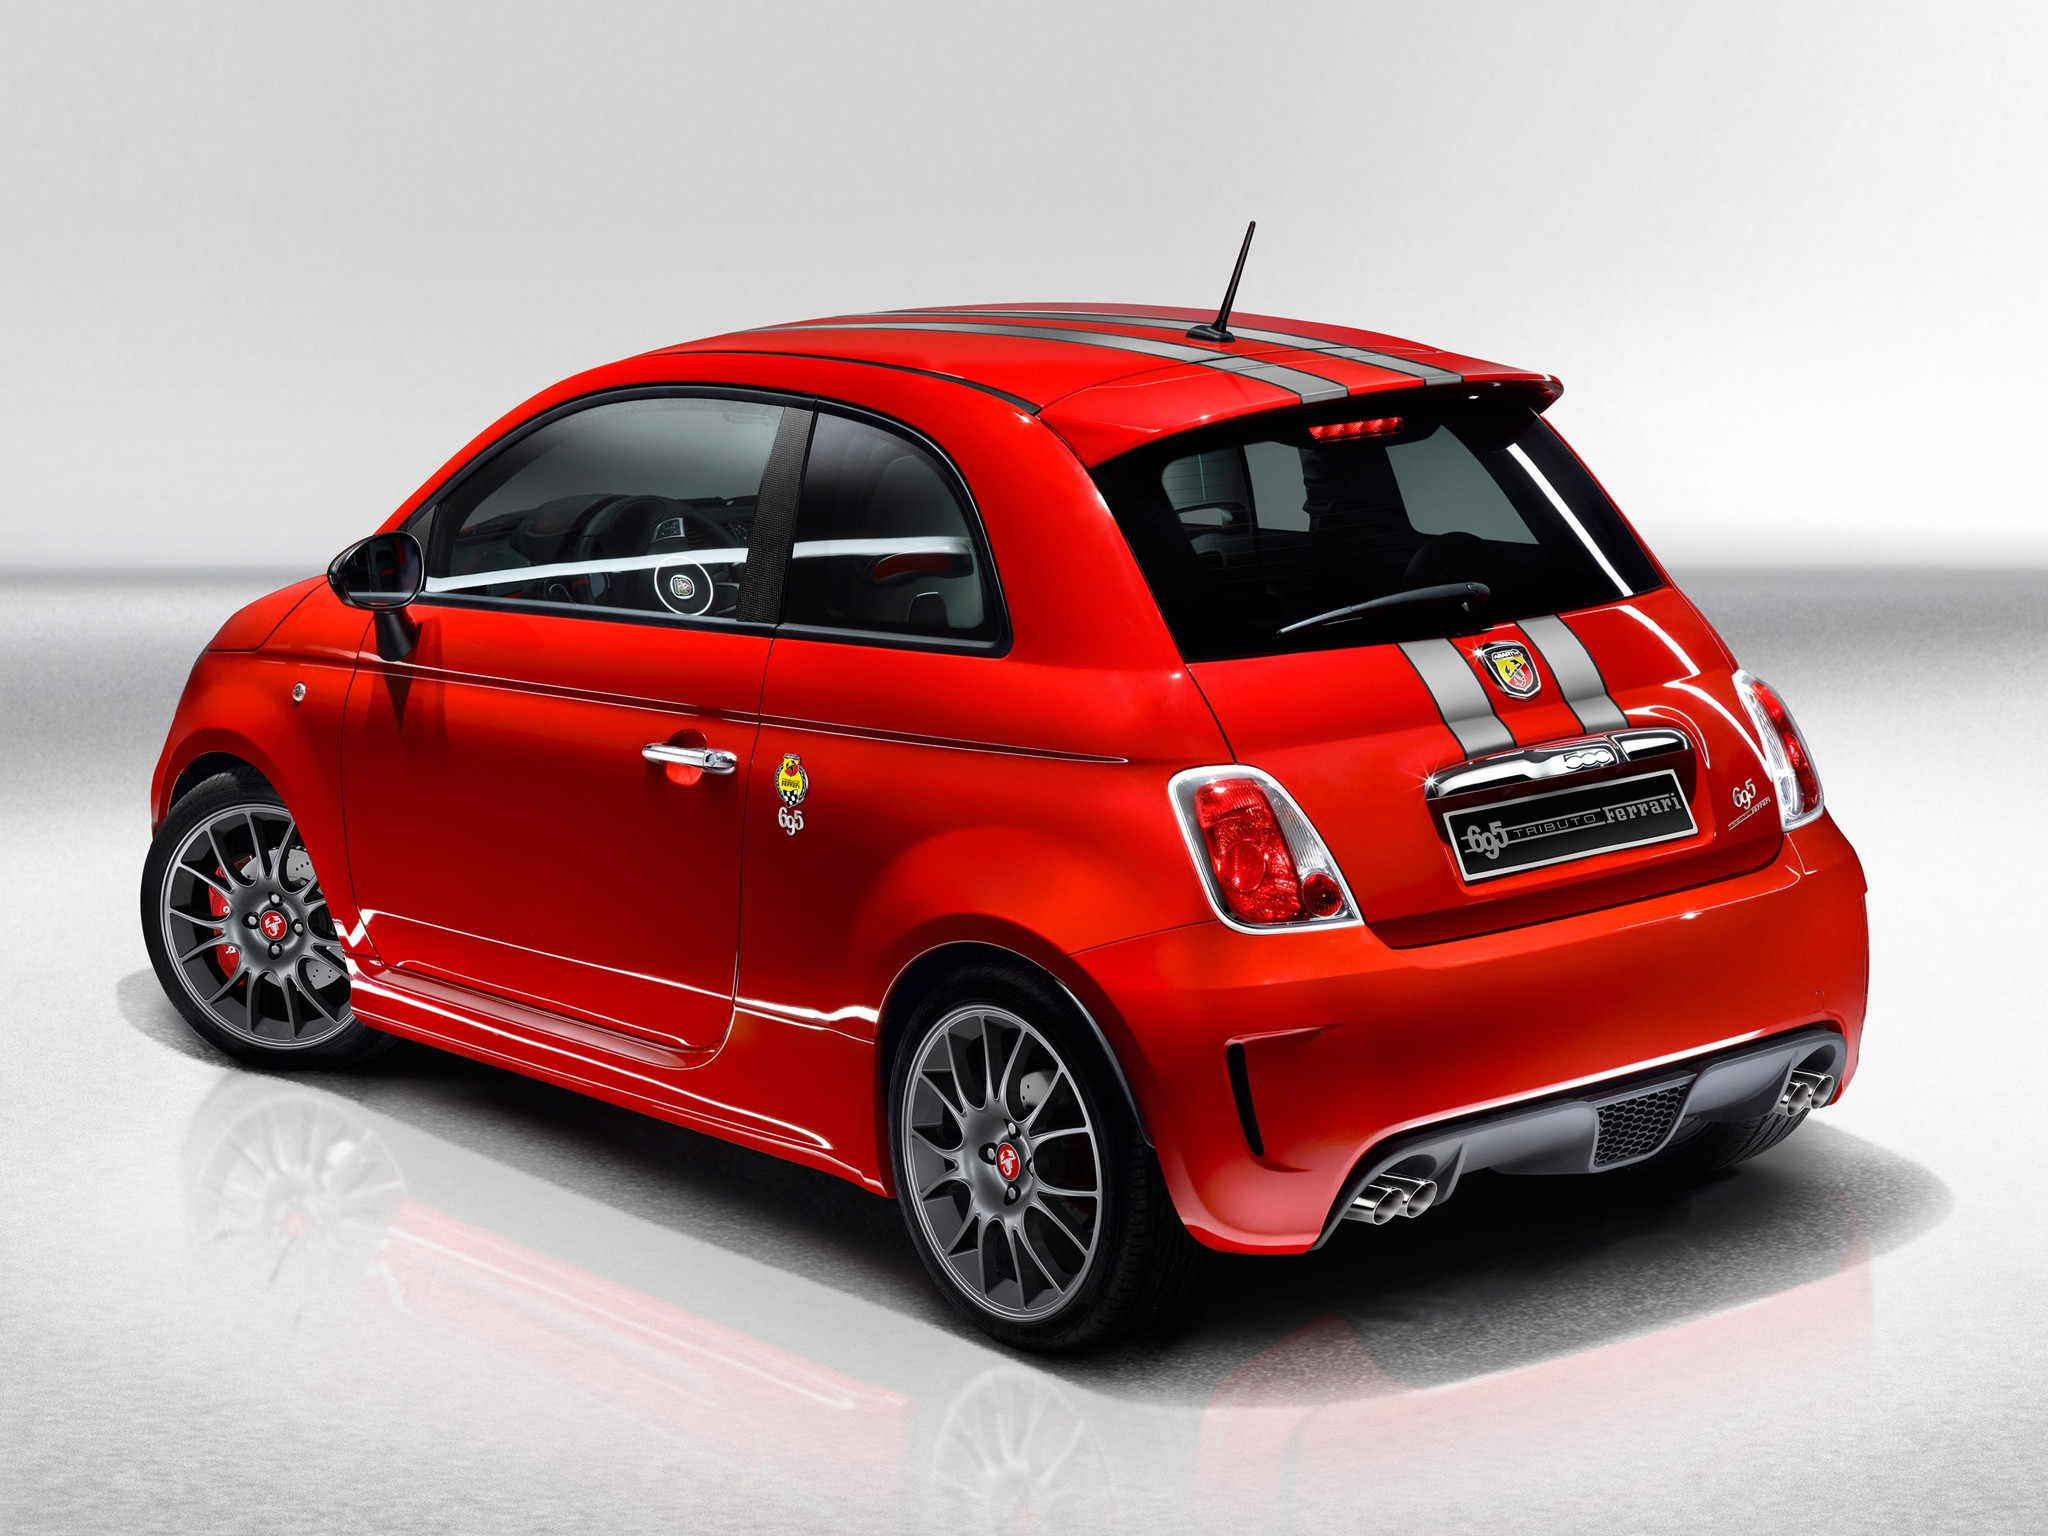 fiat 500 abarth 695 tributo ferrari specs 2009 2010. Black Bedroom Furniture Sets. Home Design Ideas